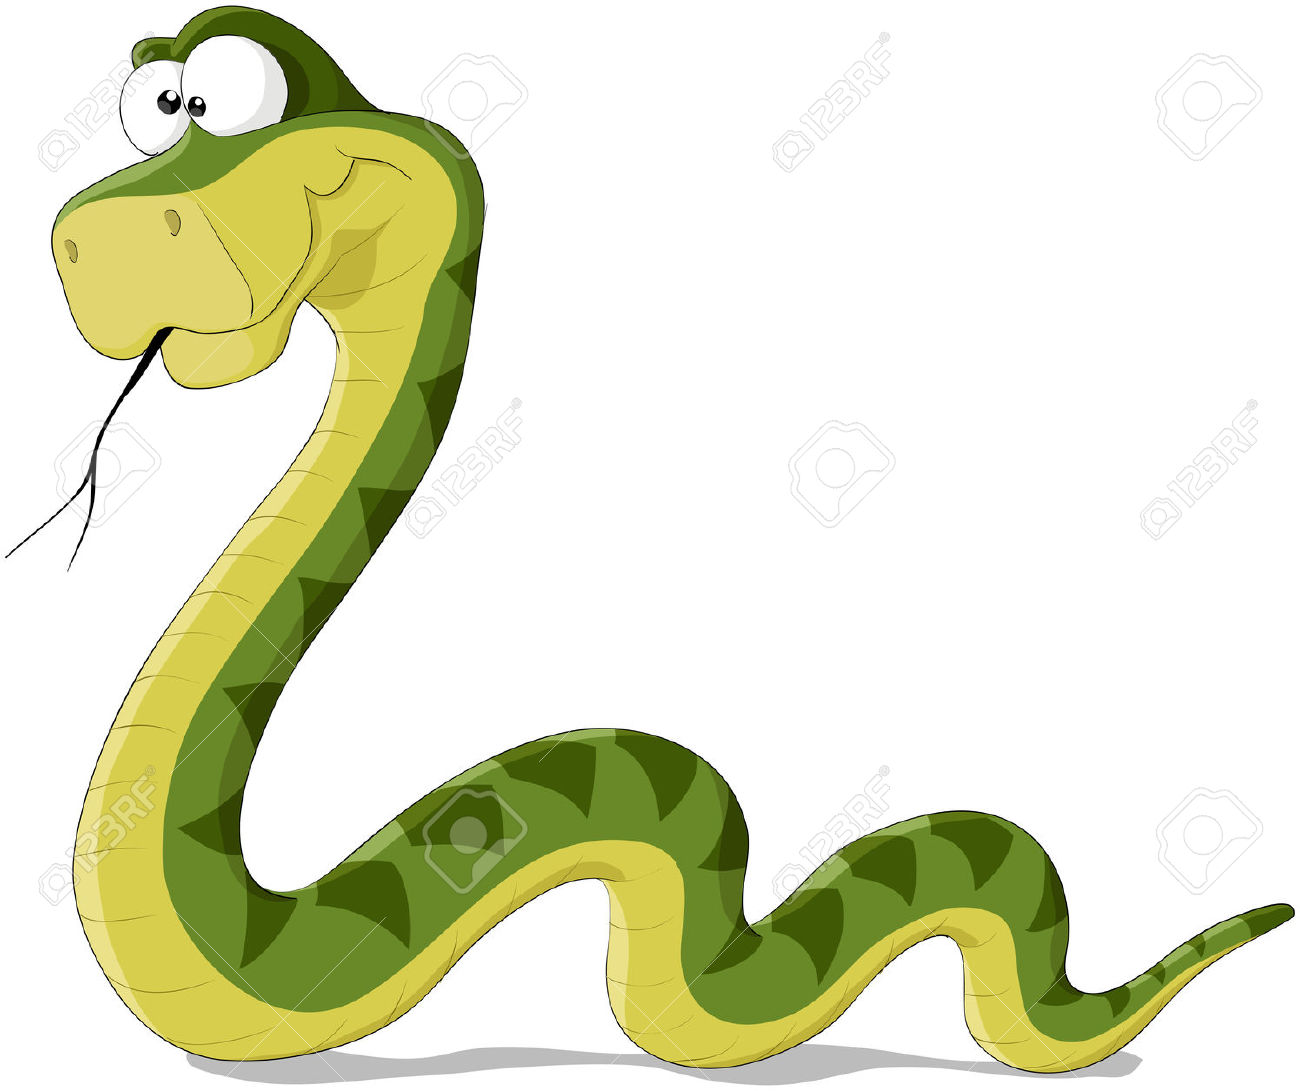 Serpent clipart forest animal >  For Images camping